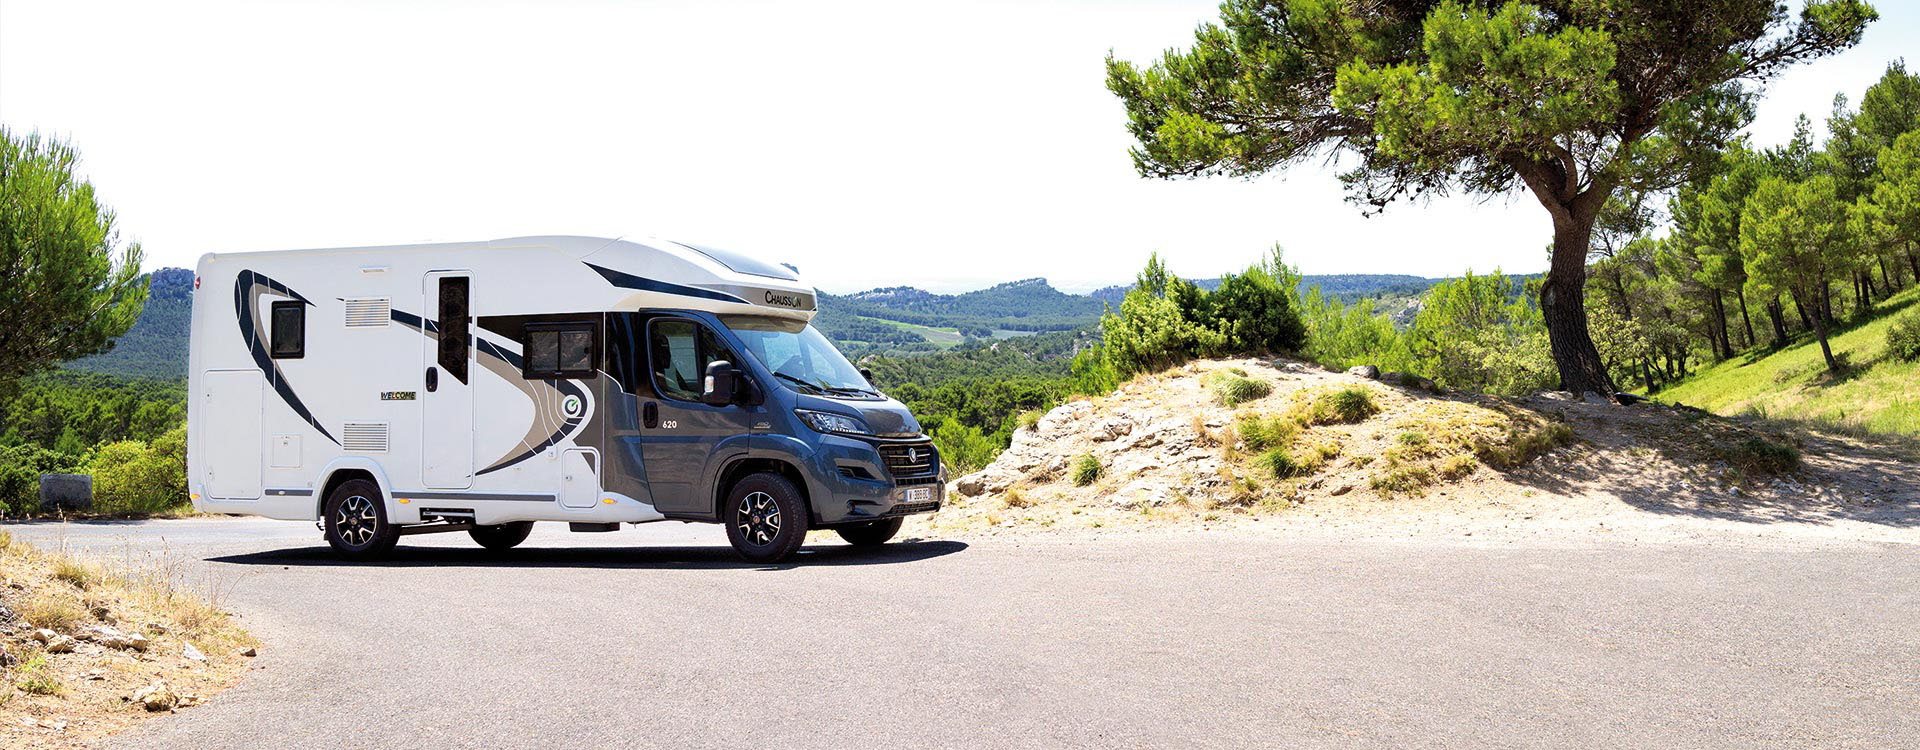 Camping car occasion finistere